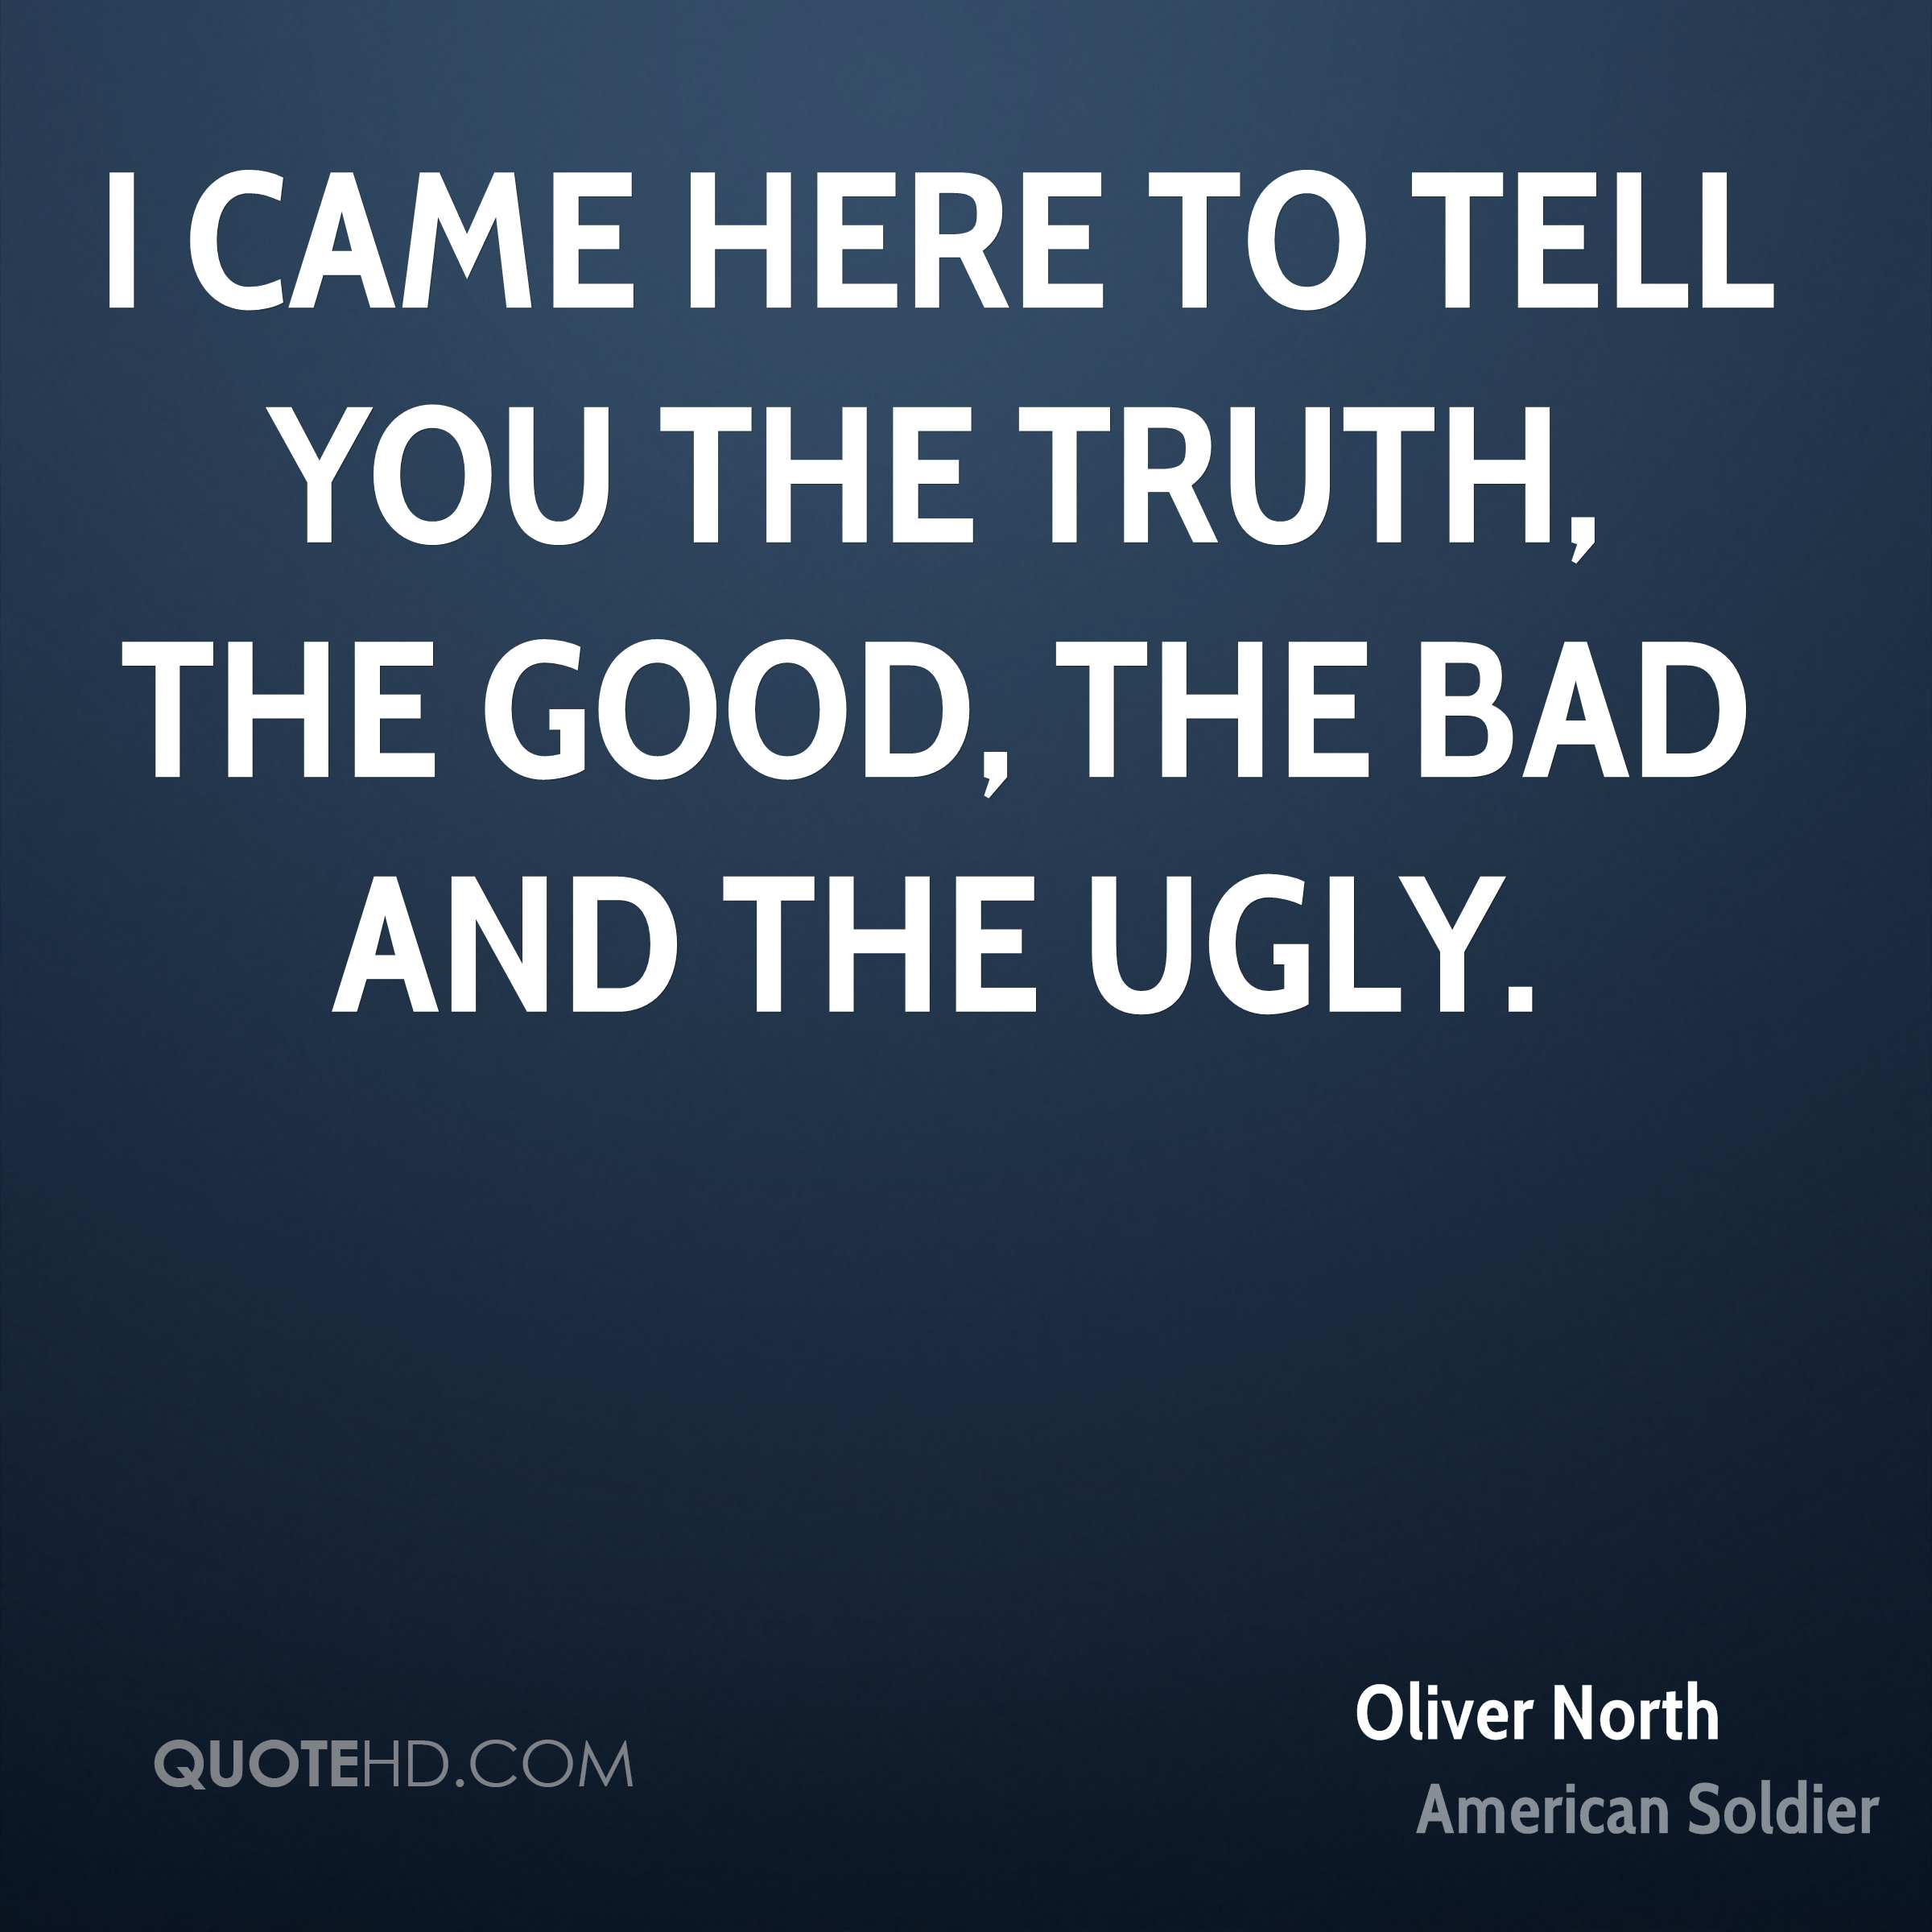 I came here to tell you the truth, the good, the bad and the ugly.